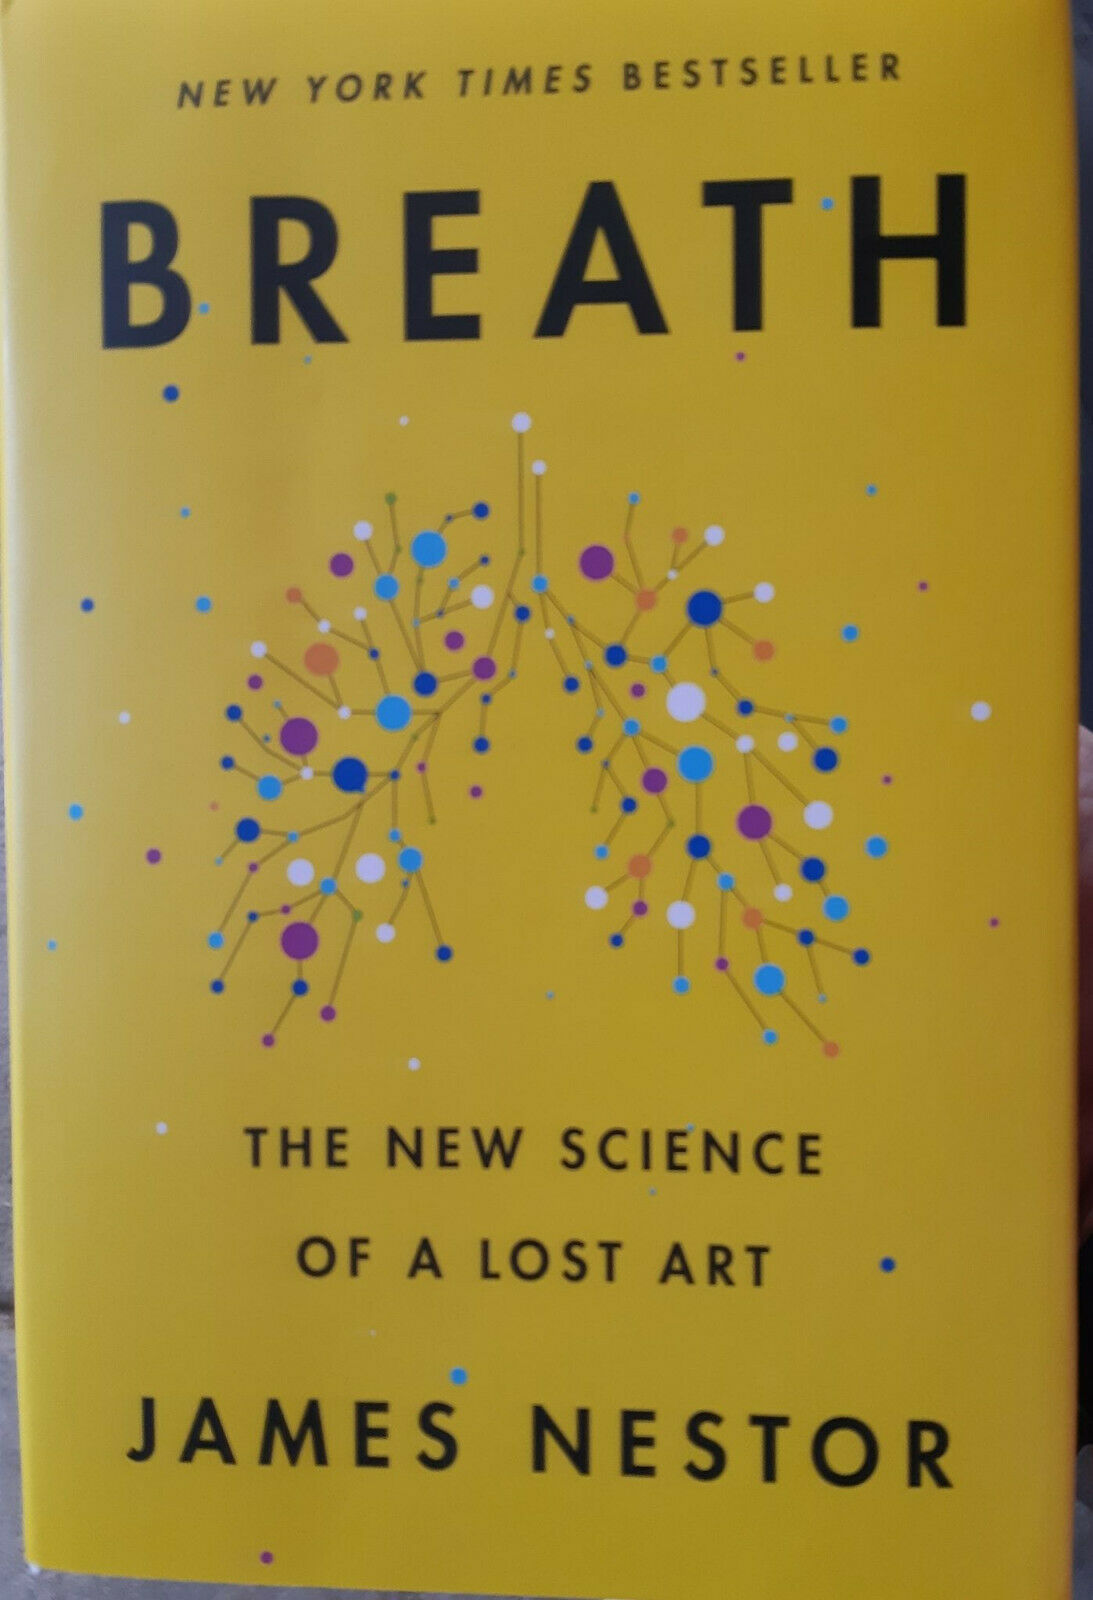 Breath : The New Science of a Lost Art, Hardcover by Nestor, James Brand new BOX 2